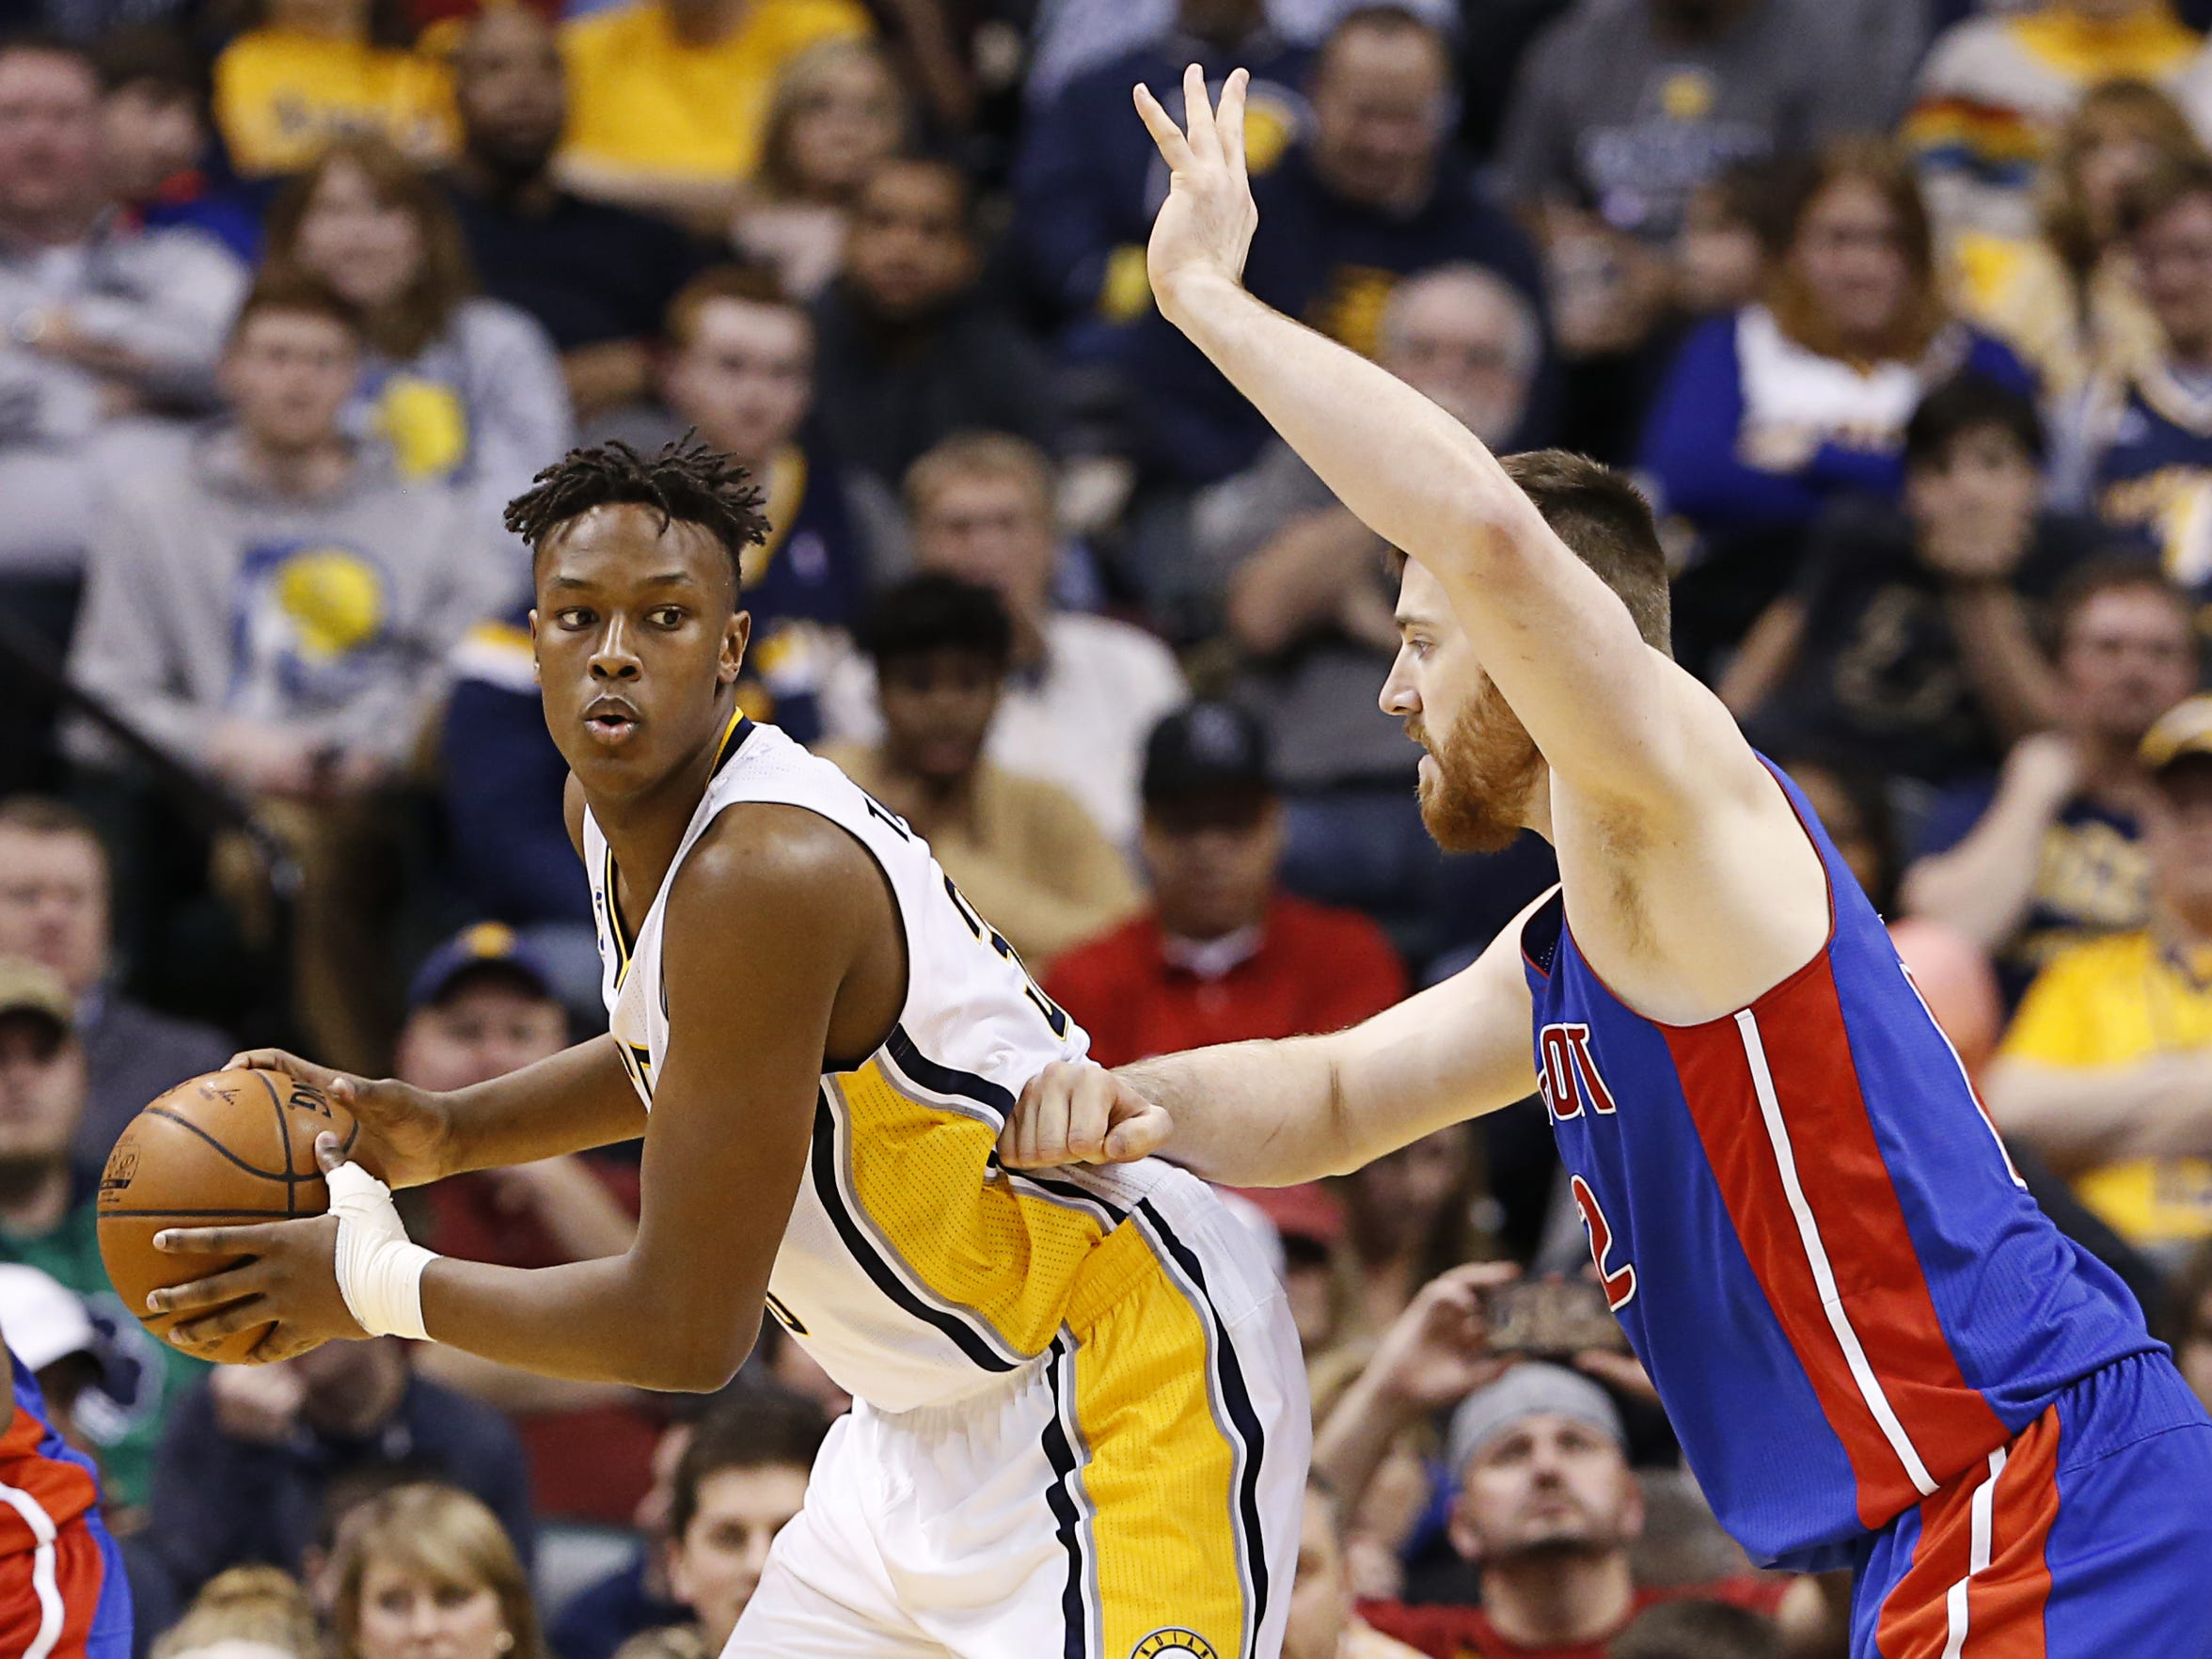 Myles Turner has exceeded many fans' expectations in his rookie season.